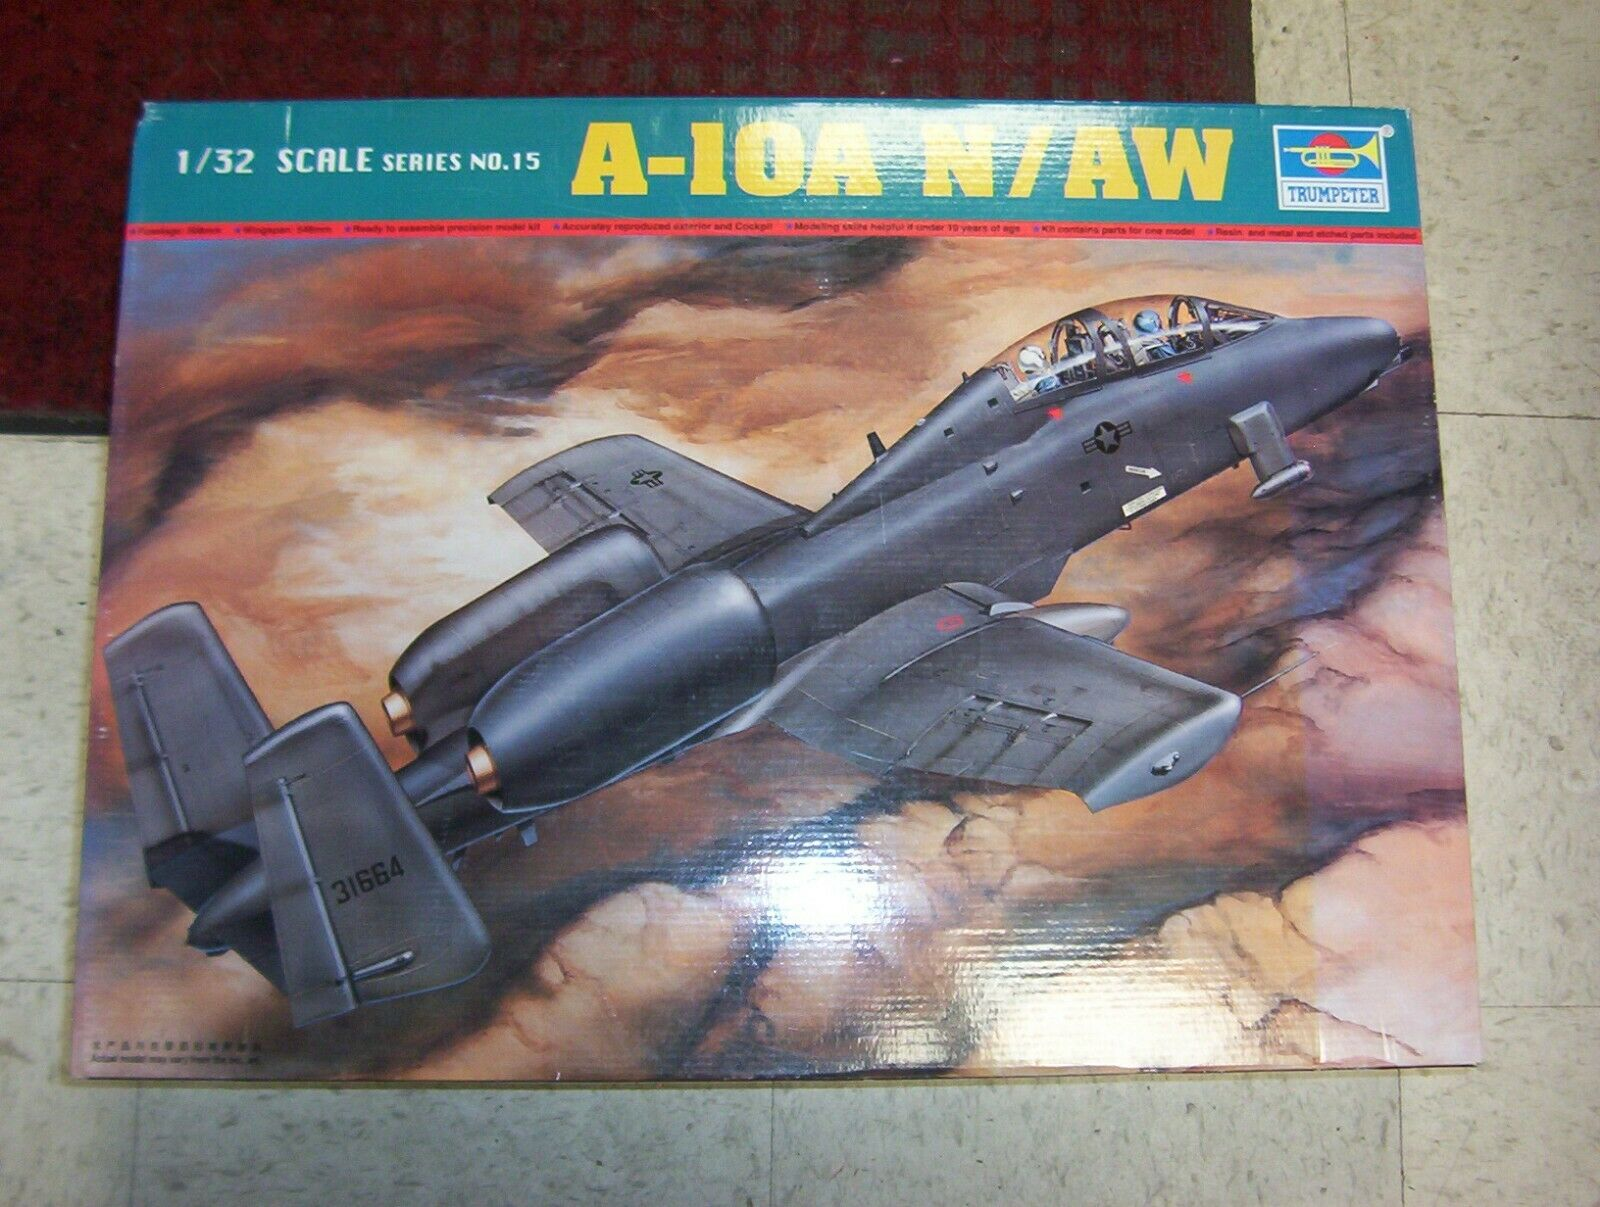 Trumpeter A 10a N Aw Thunderbolt Ii Model Scale 1 32 St For Sale Online